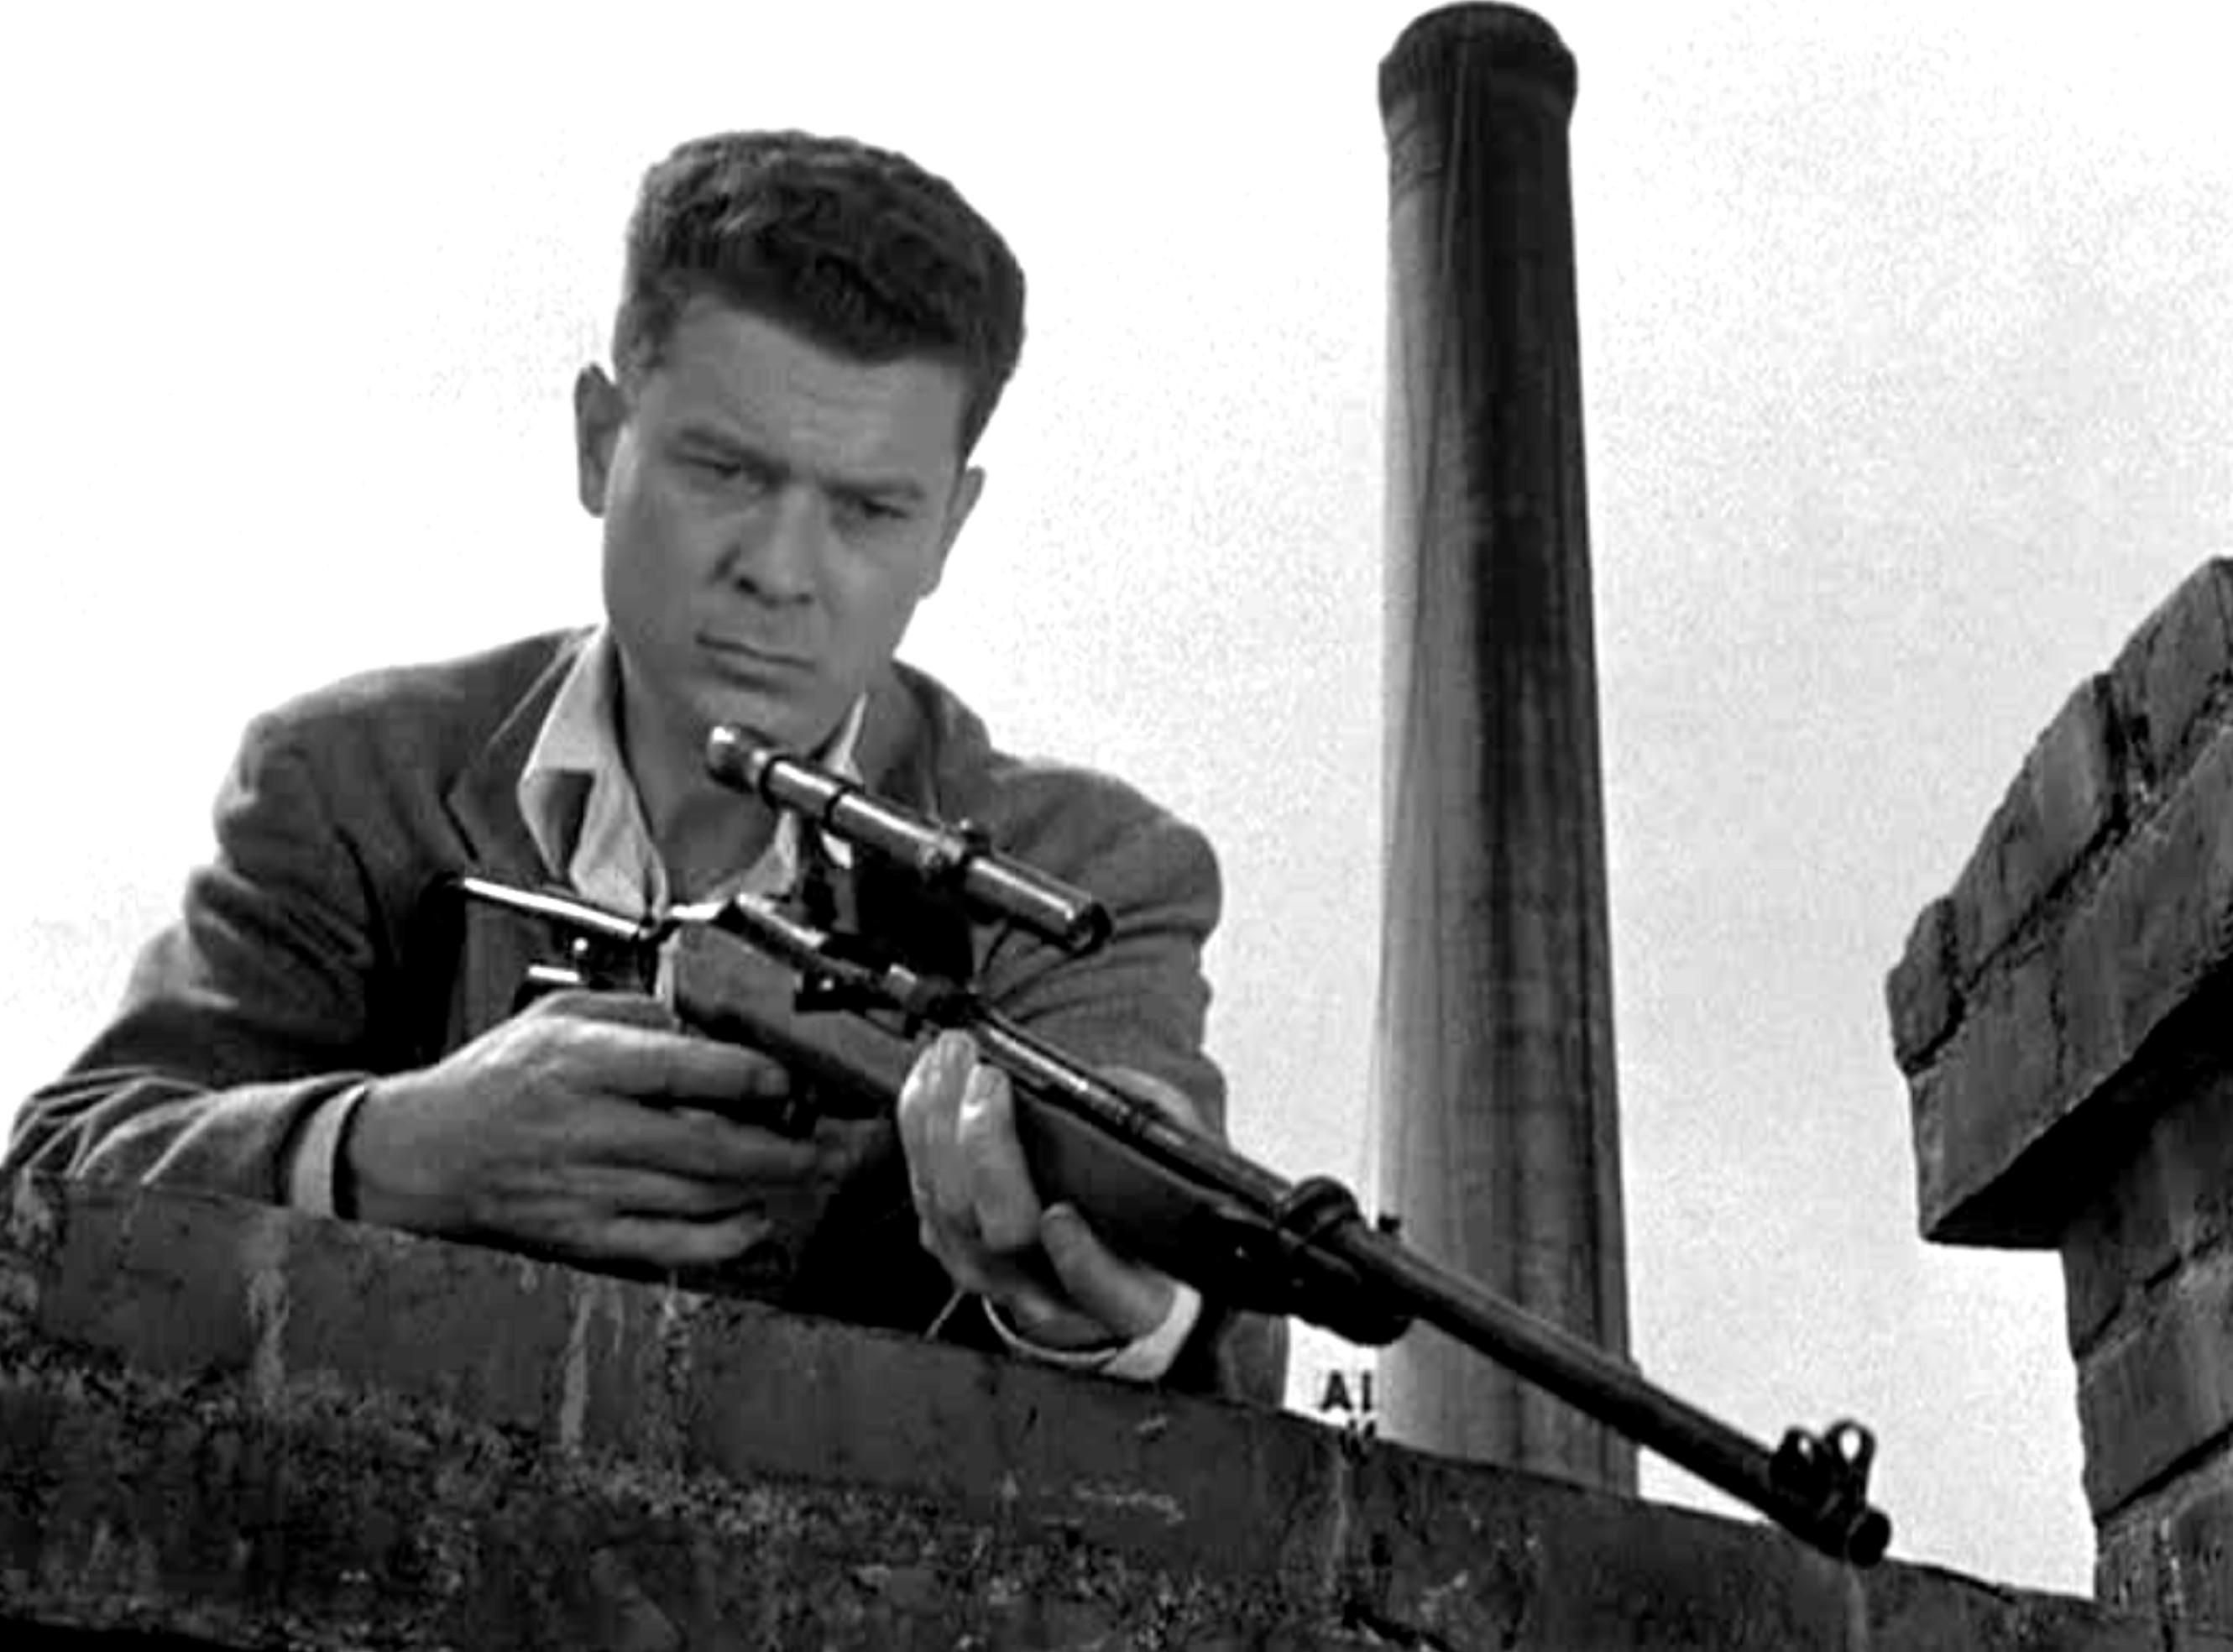 Arthur Franz on a shooting spree in The Sniper (1952)